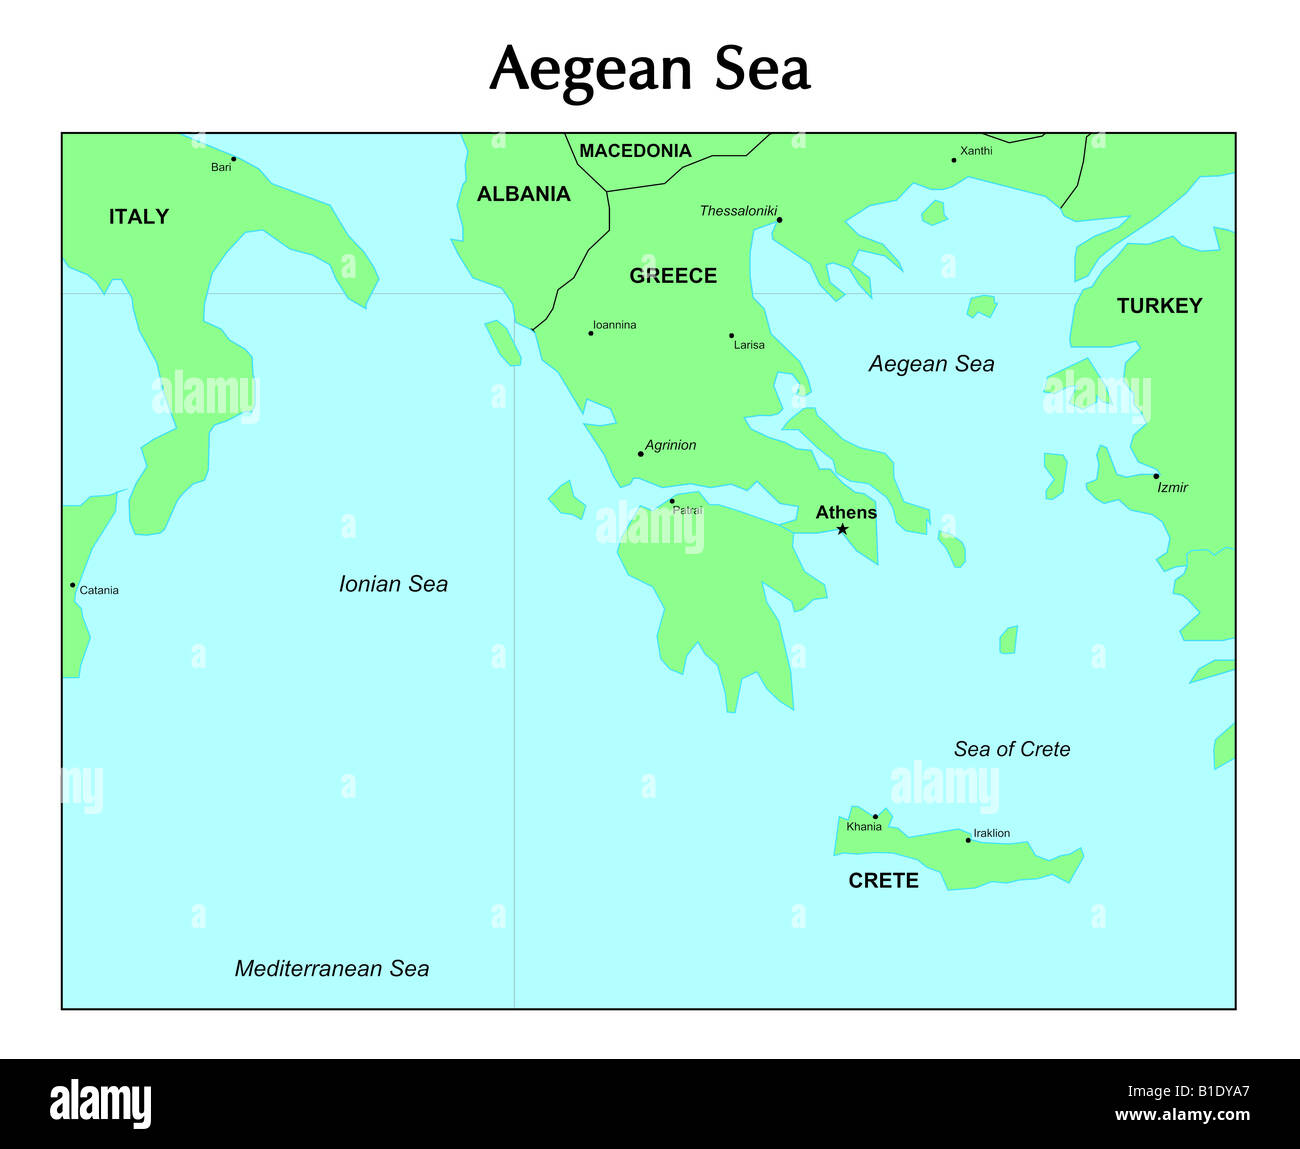 Aegean Sea Map Stock Photos & Aegean Sea Map Stock Images ... on red sea, map of troy, map of english channel, map of gulf of aden, map of africa, map of balkan mountains, map of persian gulf, north sea, black sea, map of mesopotamia, baltic sea, caspian sea, sea of marmara, map of suez canal, map of turkey, map of bosporus, map of europe, map of tigris river, mediterranean sea, map of greece, map of gulf of finland, map of mediterranean, map of macedonia, map of spain, map of cyclades, map of dardanelles, adriatic sea, map of athens, ionian sea,